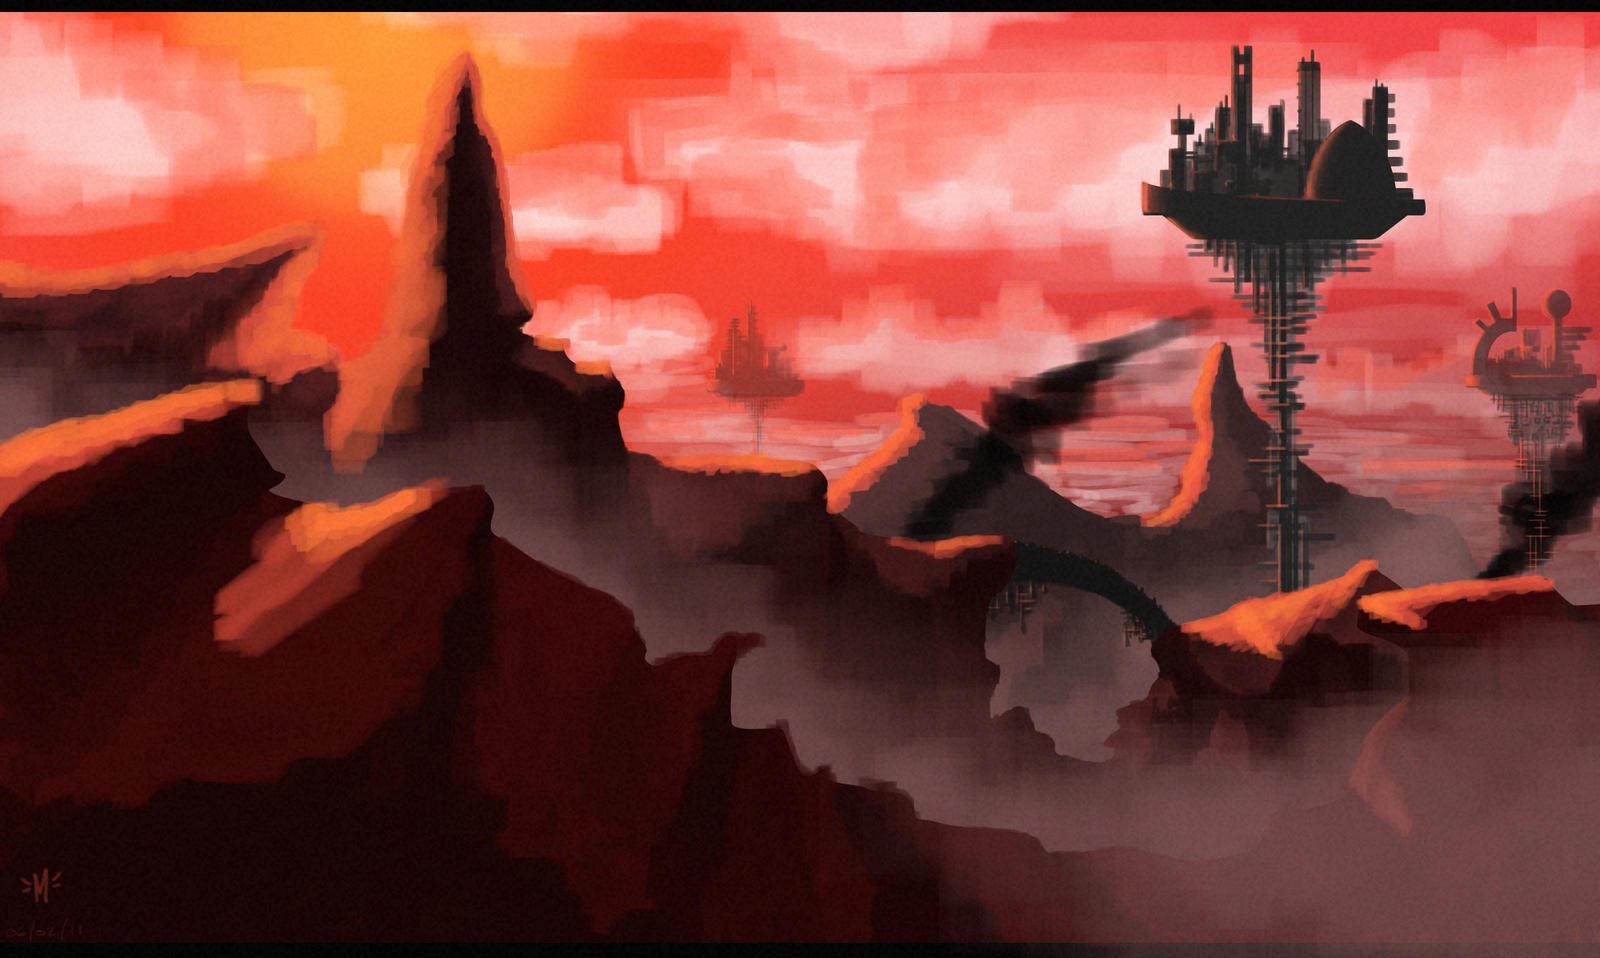 Mars Colony Landscape Practice by rainboy666 on DeviantArt